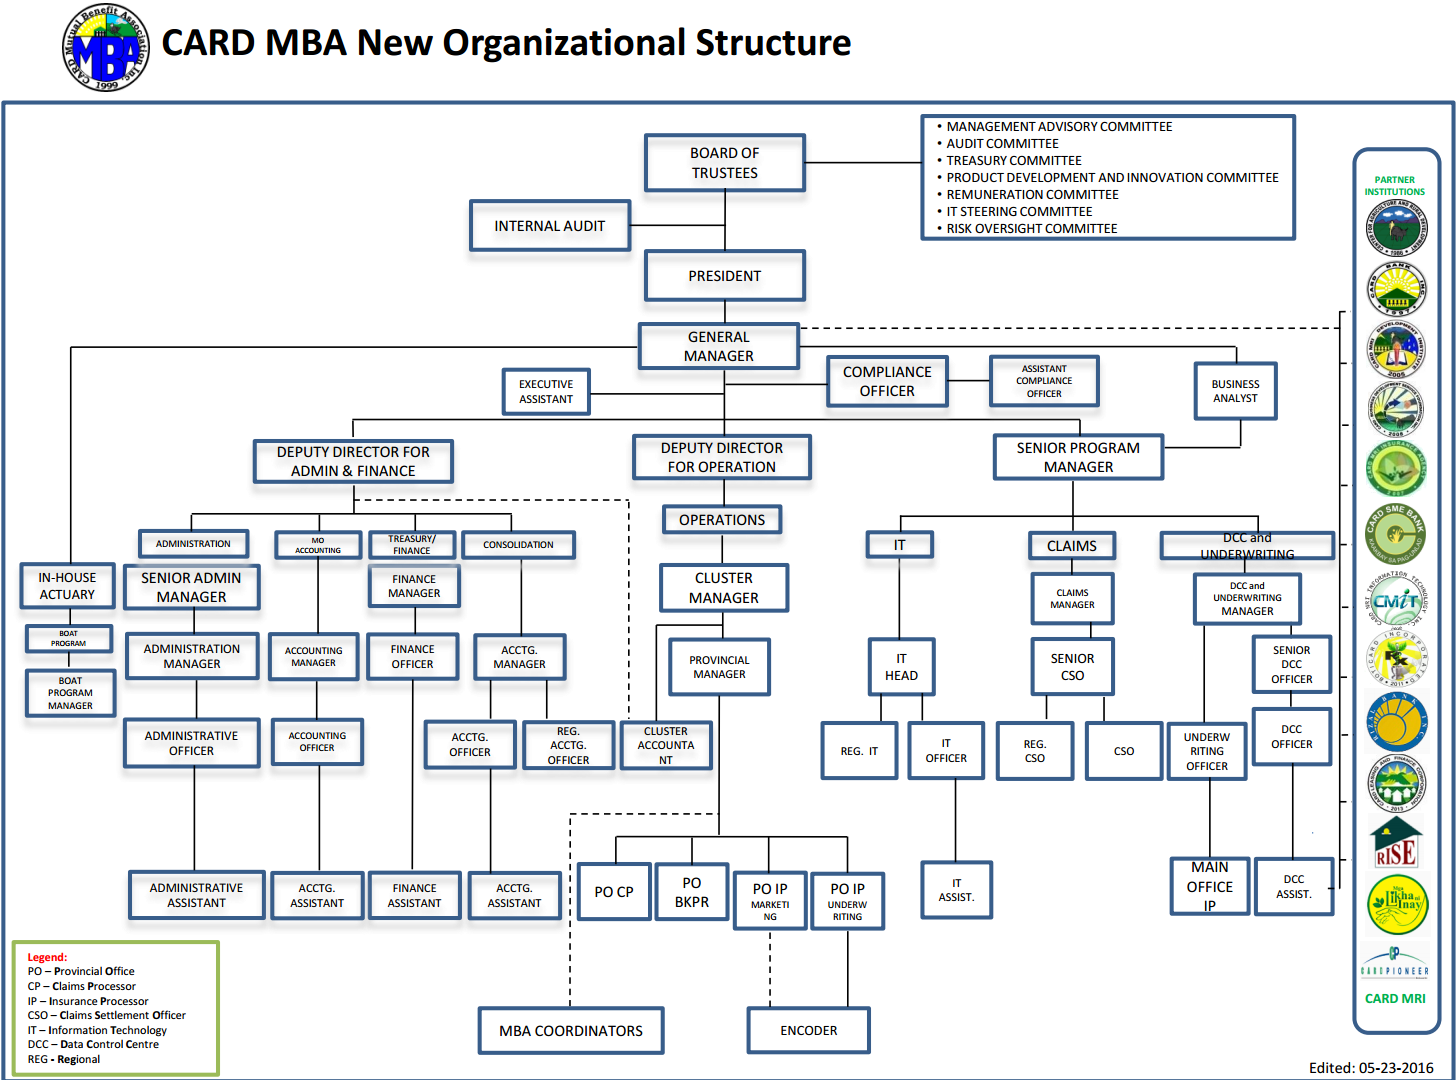 CARD MBA ORGANIZATIONAL STRUCTURE - 5.06.14 (FINAL) Revised V.2